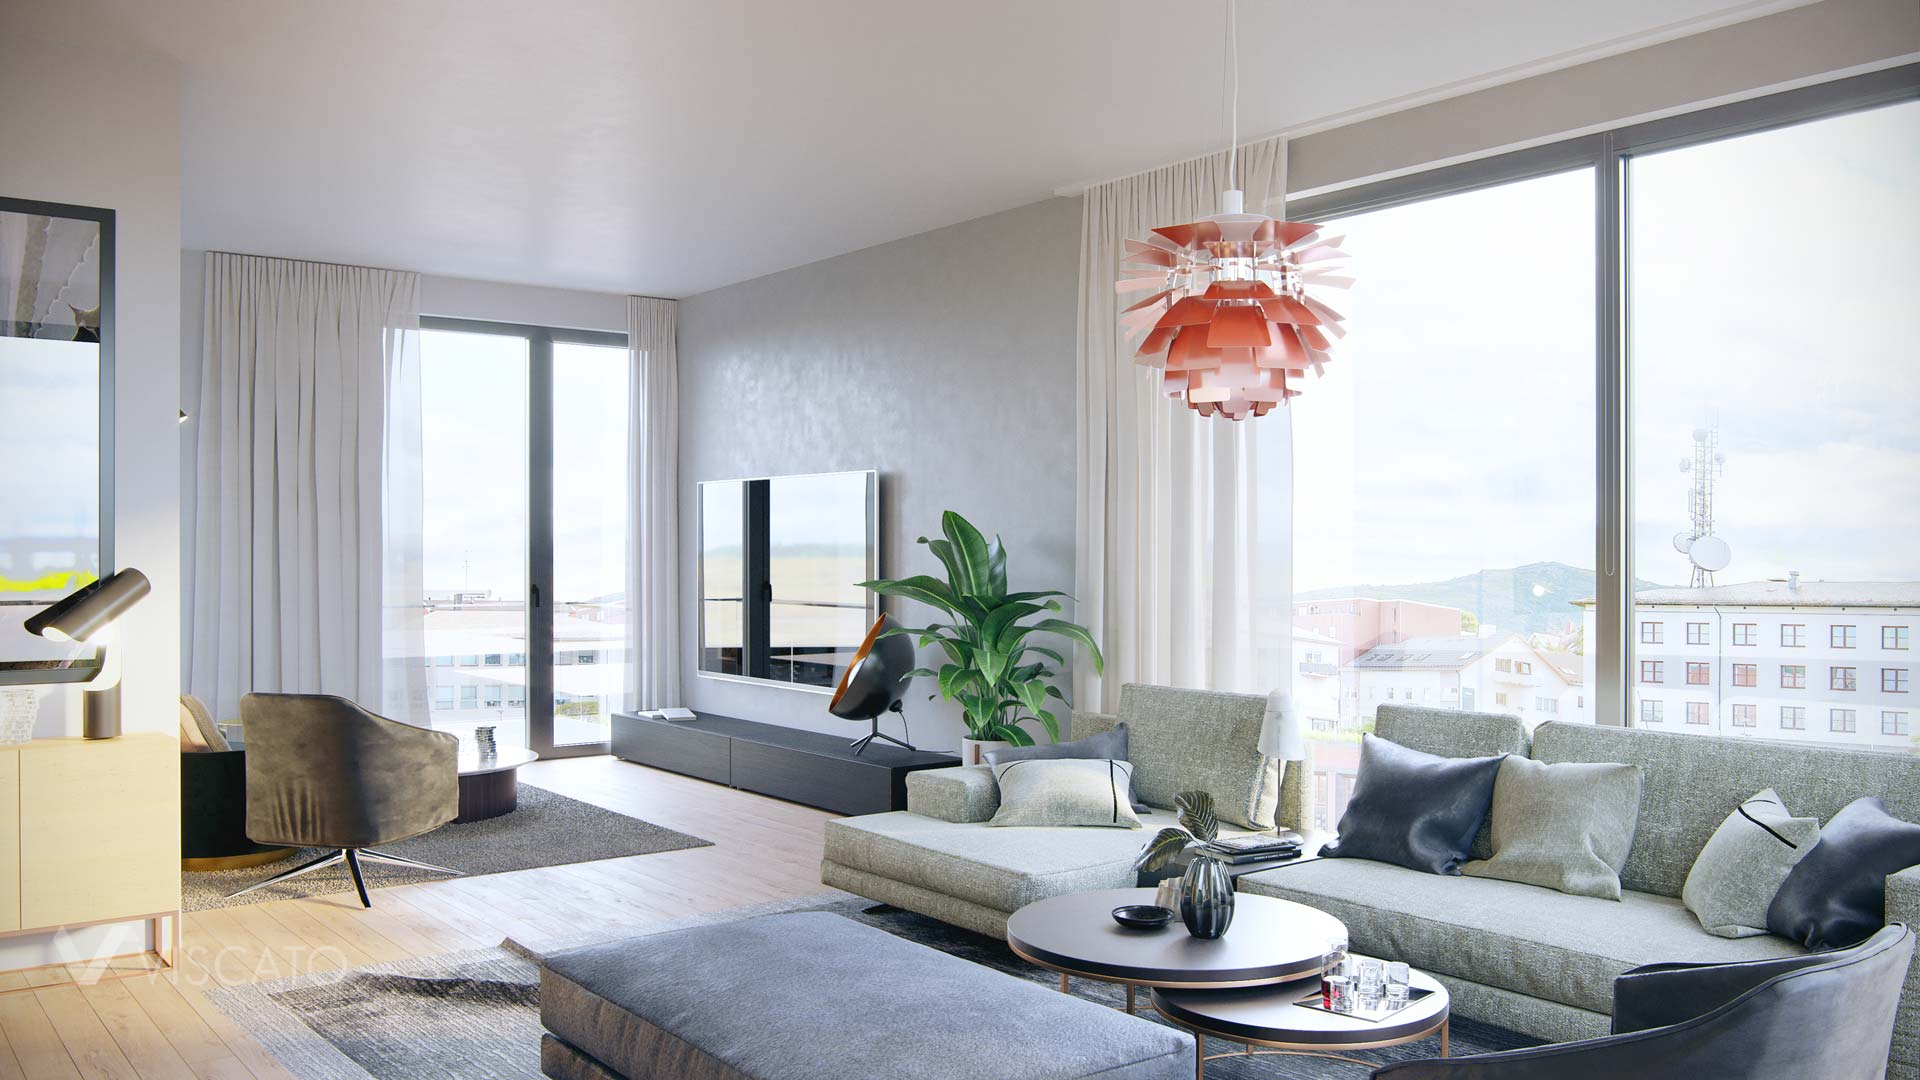 living room with large windows, Viscato 3D